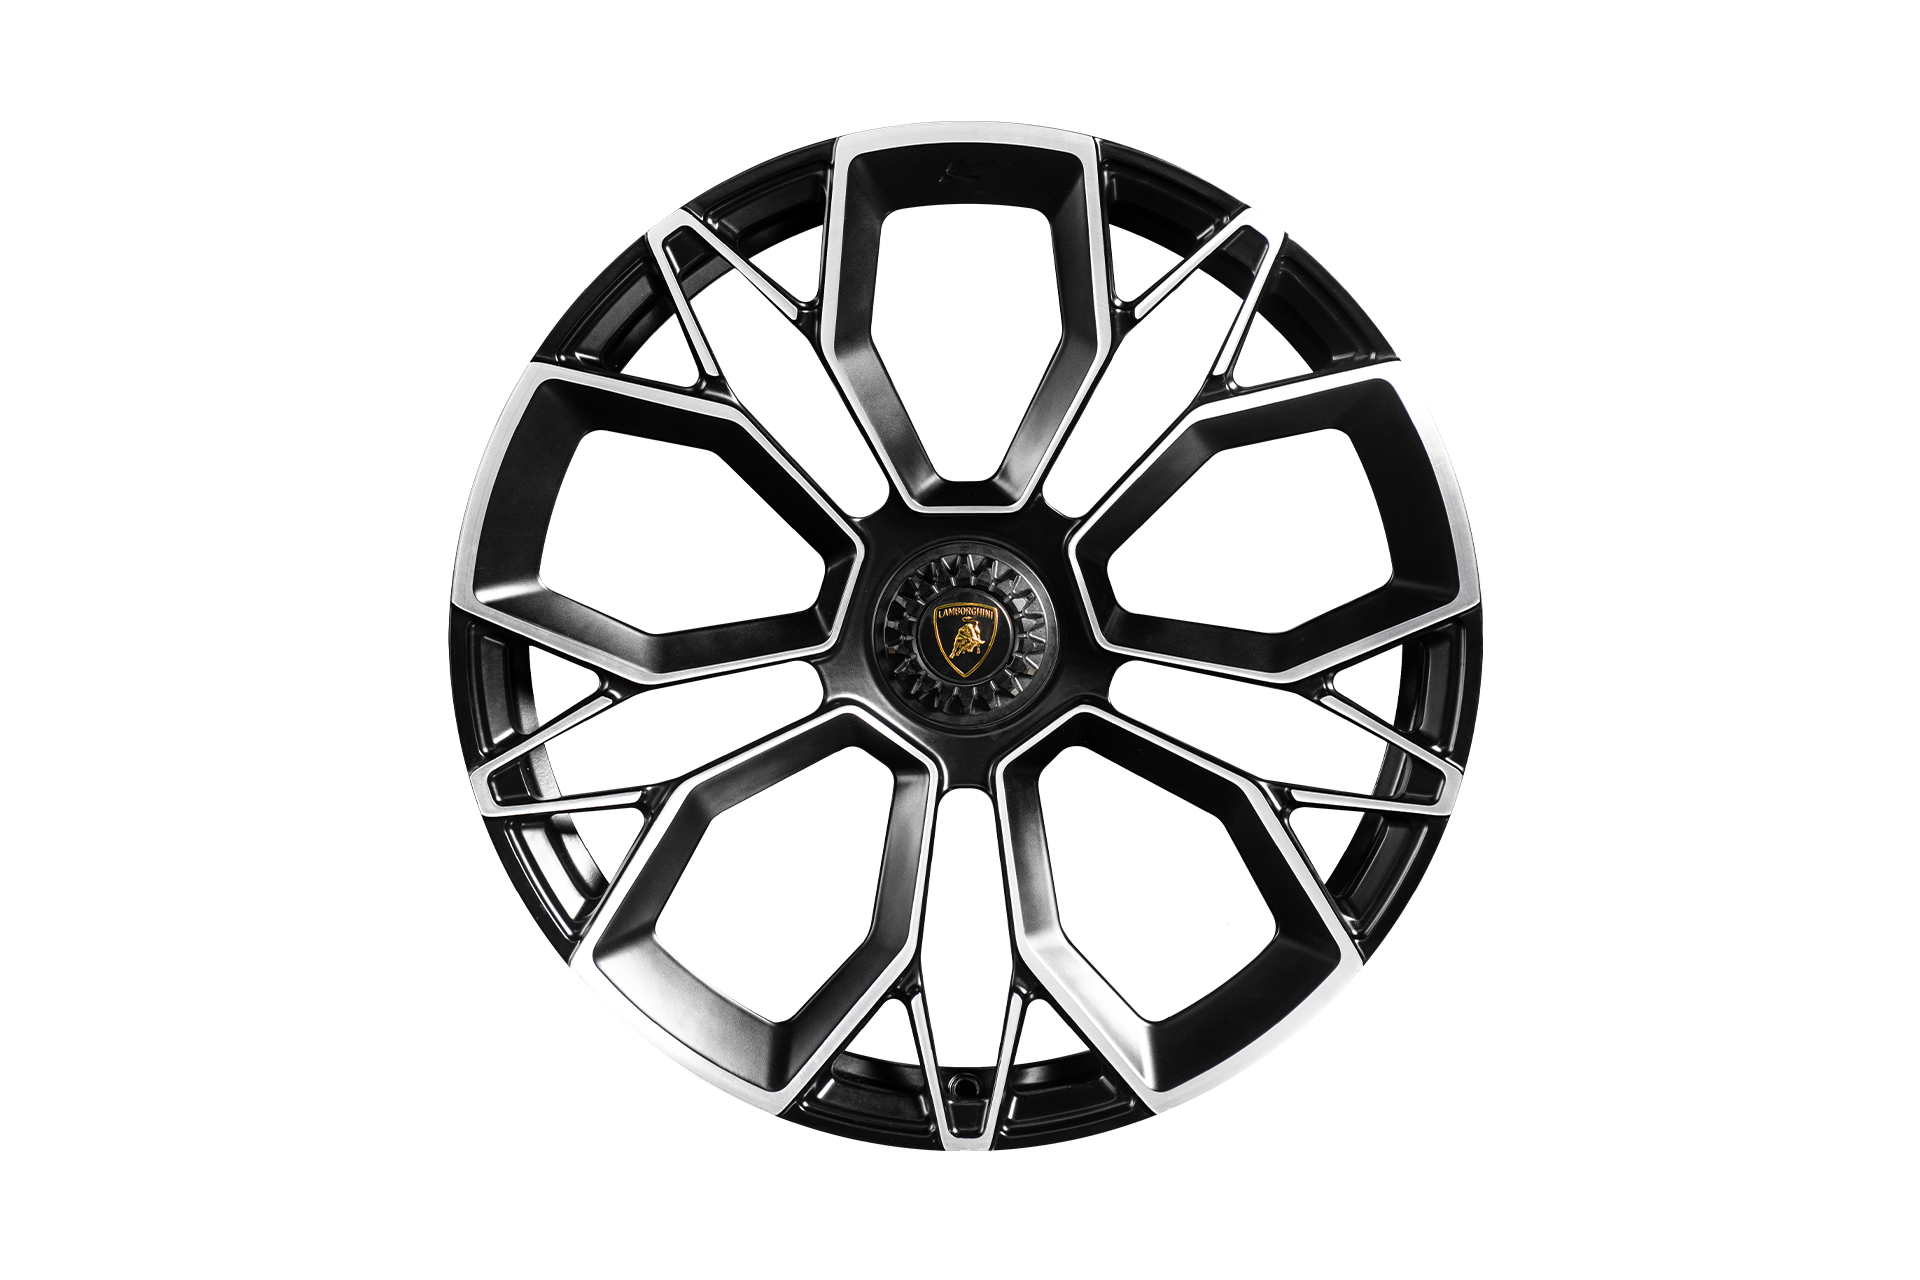 Lamborghini Aventador Type 53 Forged Light Alloy Wheels by Kahn - Image 3718